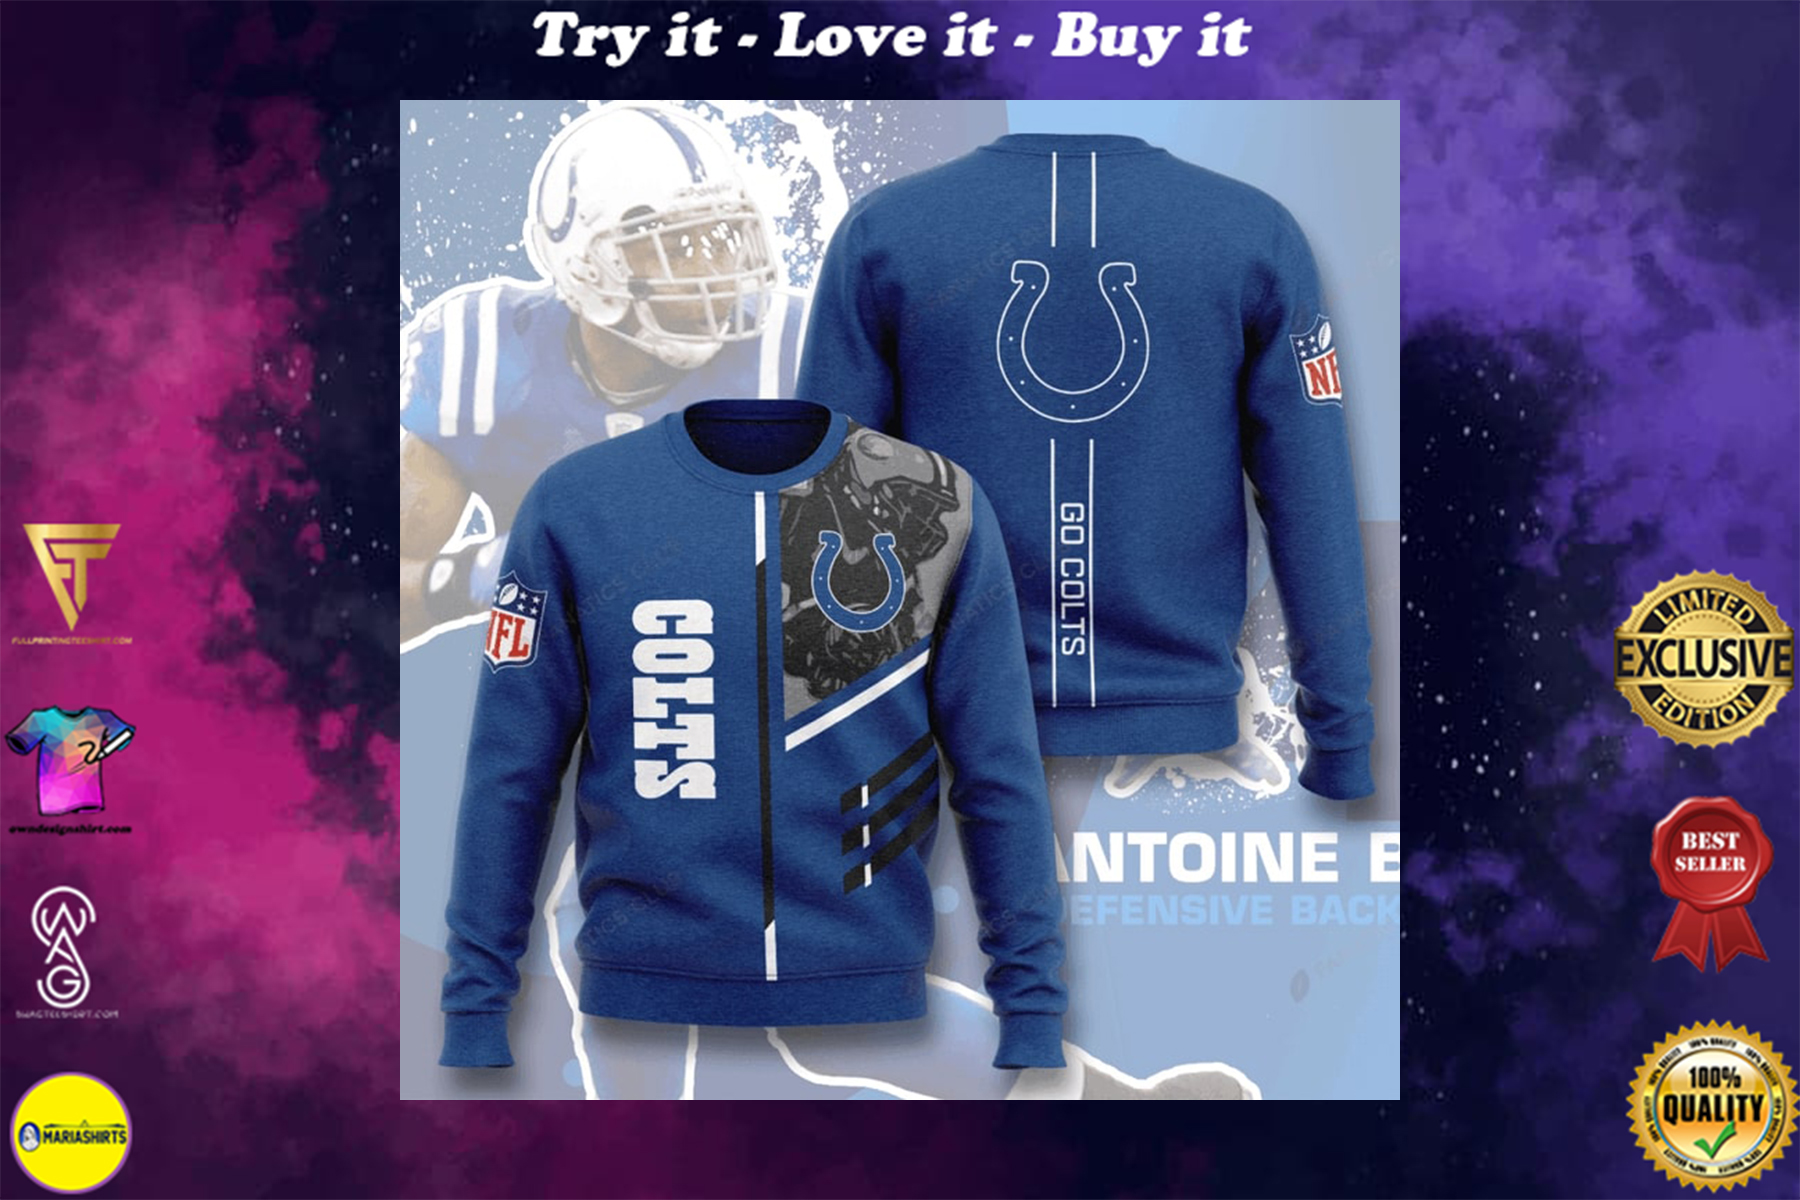 [special edition] national football league indianapolis colts go colts full printing ugly sweater - maria